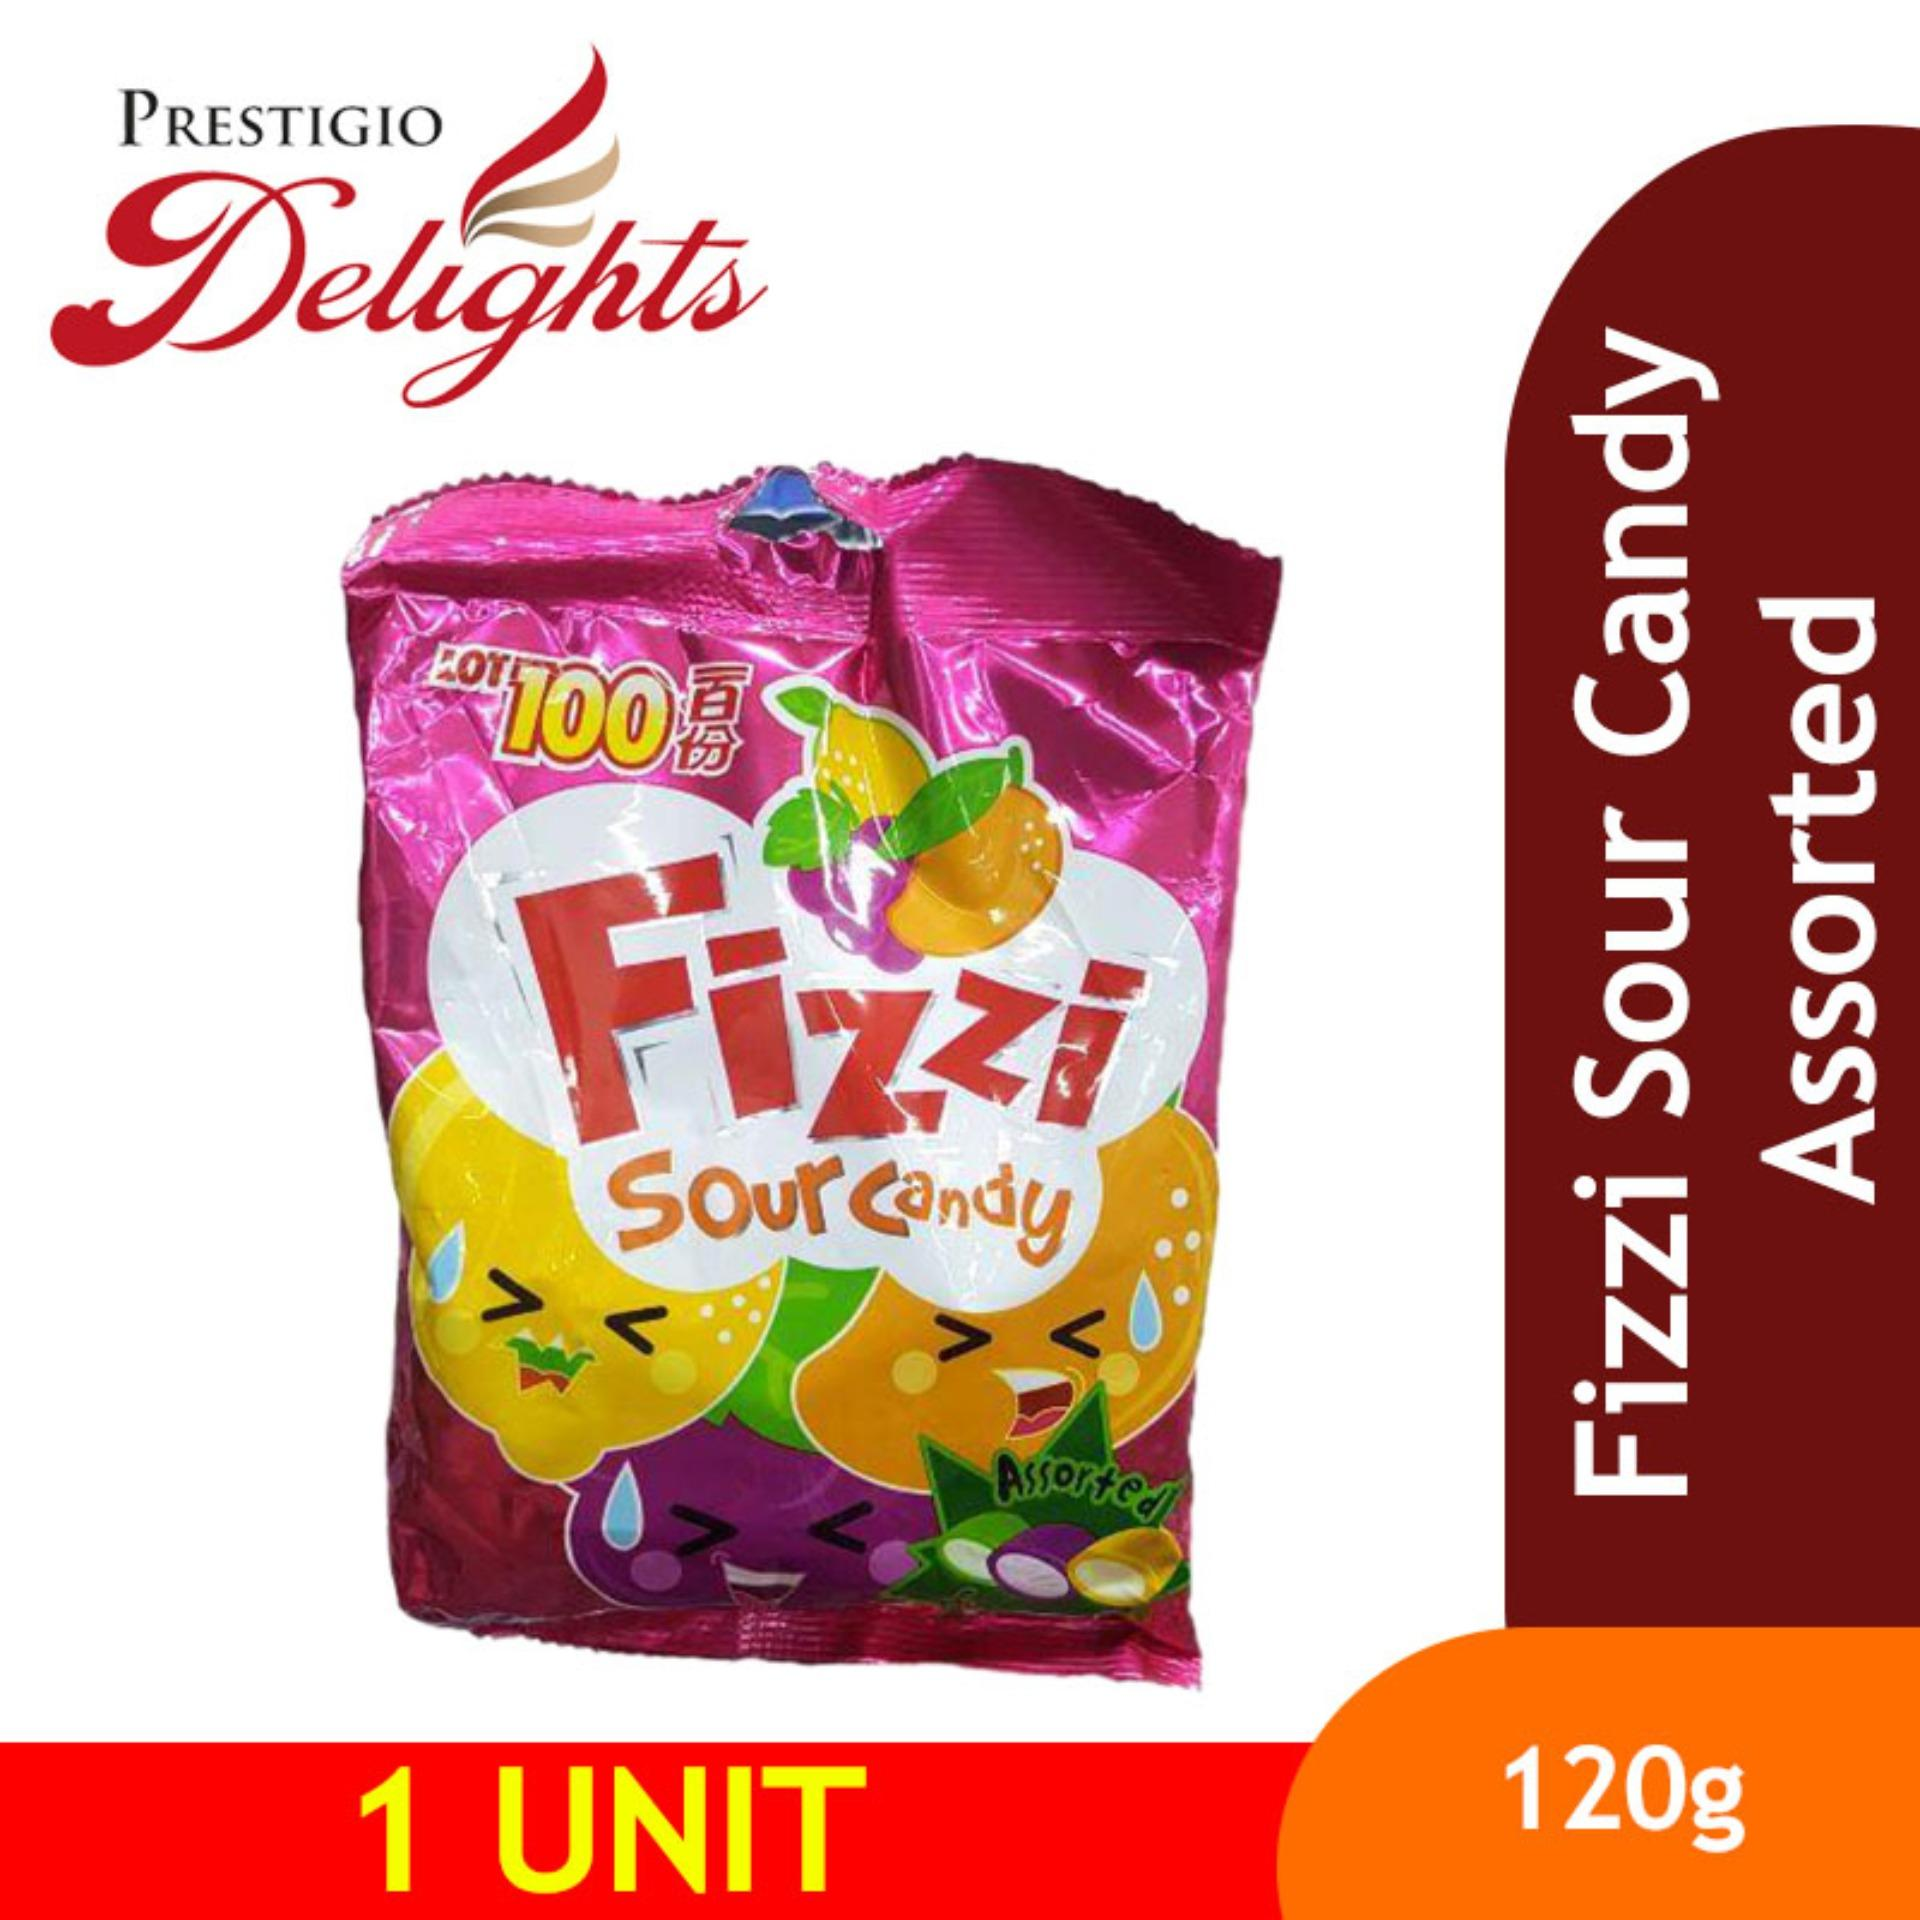 Fizzi Sour Candy Assorted By Prestigio Delights.